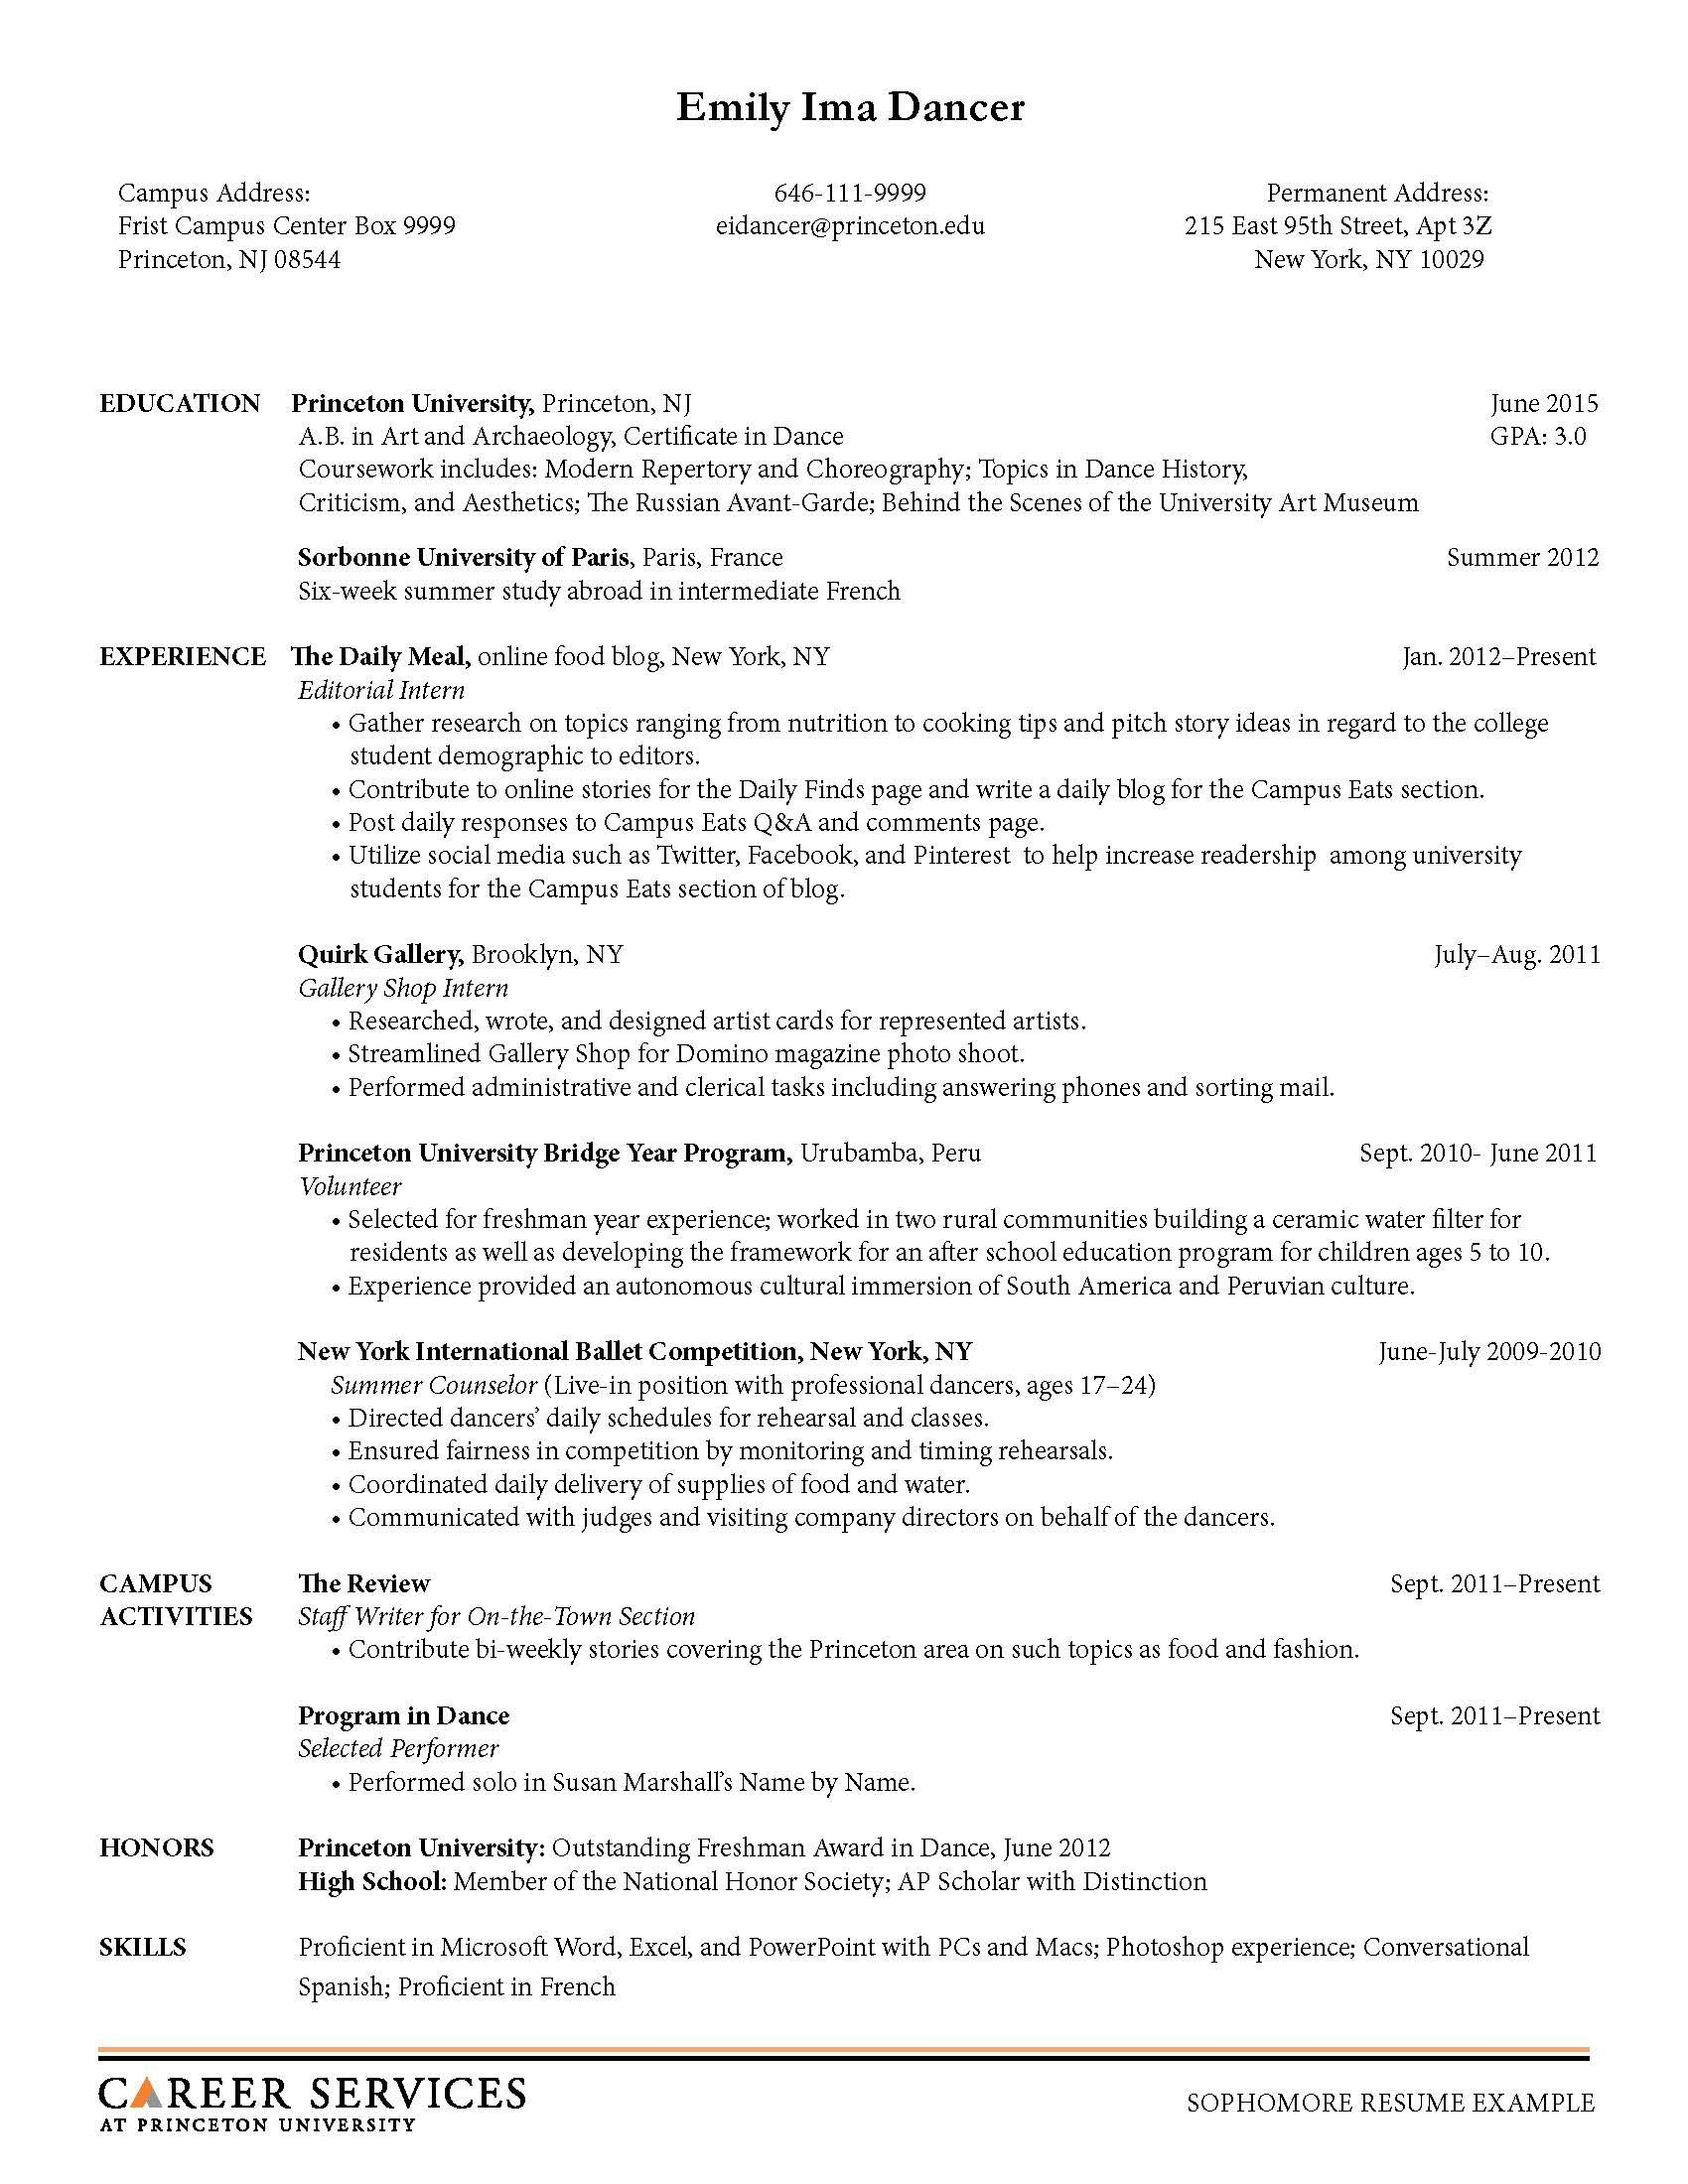 Picnictoimpeachus  Wonderful Sample Resume Resume And Career On Pinterest With Hot Litigation Attorney Resume Besides Actual Free Resume Builder Furthermore Create My Free Resume With Cool Resume Reference Page Example Also Manufacturing Supervisor Resume In Addition Nurse Resume Skills And Resume Example College Student As Well As Resume Exapmles Additionally Front Office Resume From Pinterestcom With Picnictoimpeachus  Hot Sample Resume Resume And Career On Pinterest With Cool Litigation Attorney Resume Besides Actual Free Resume Builder Furthermore Create My Free Resume And Wonderful Resume Reference Page Example Also Manufacturing Supervisor Resume In Addition Nurse Resume Skills From Pinterestcom